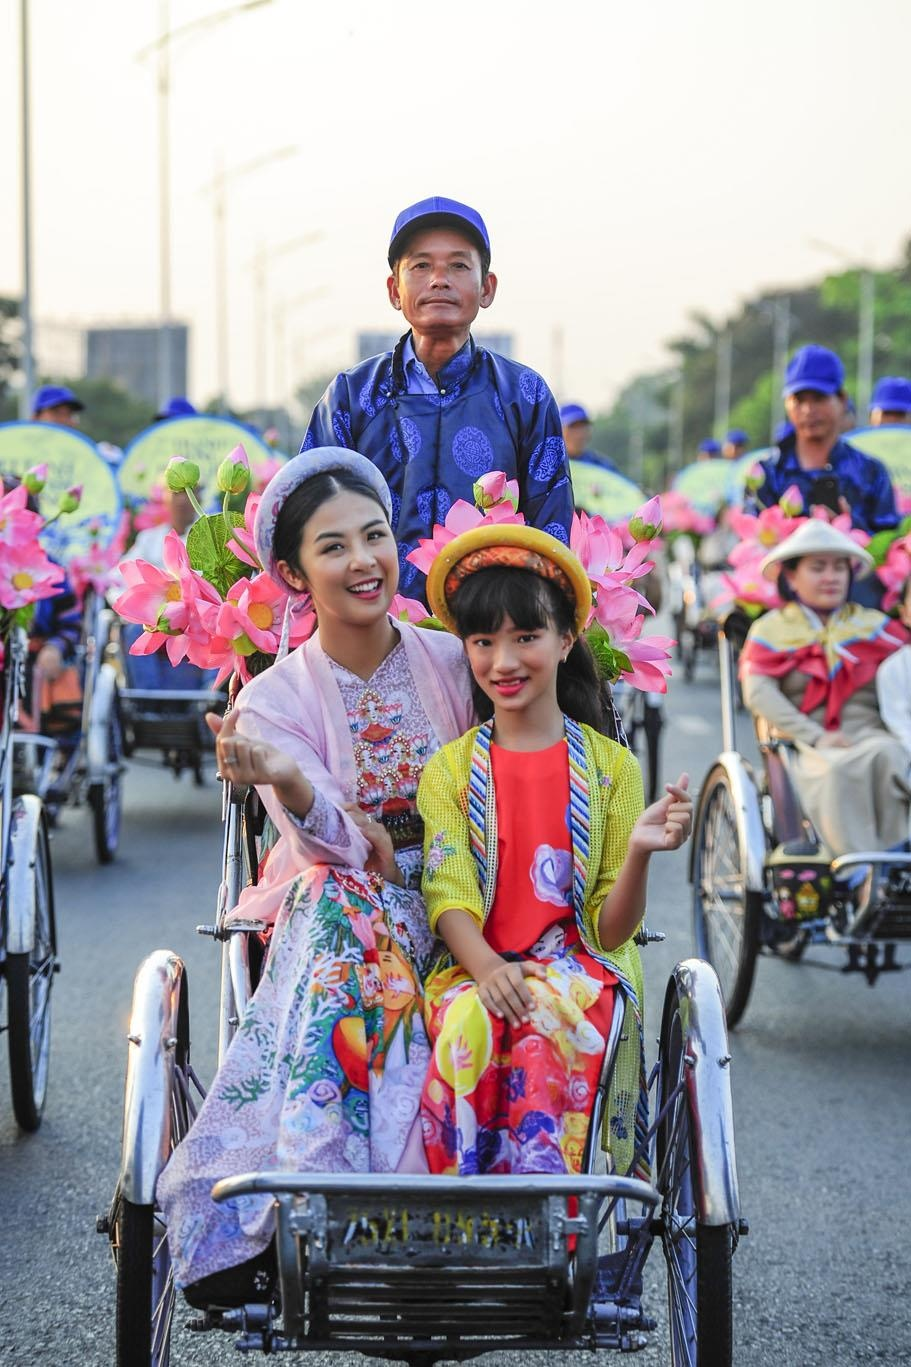 Festival lang nghe Hue anh 3